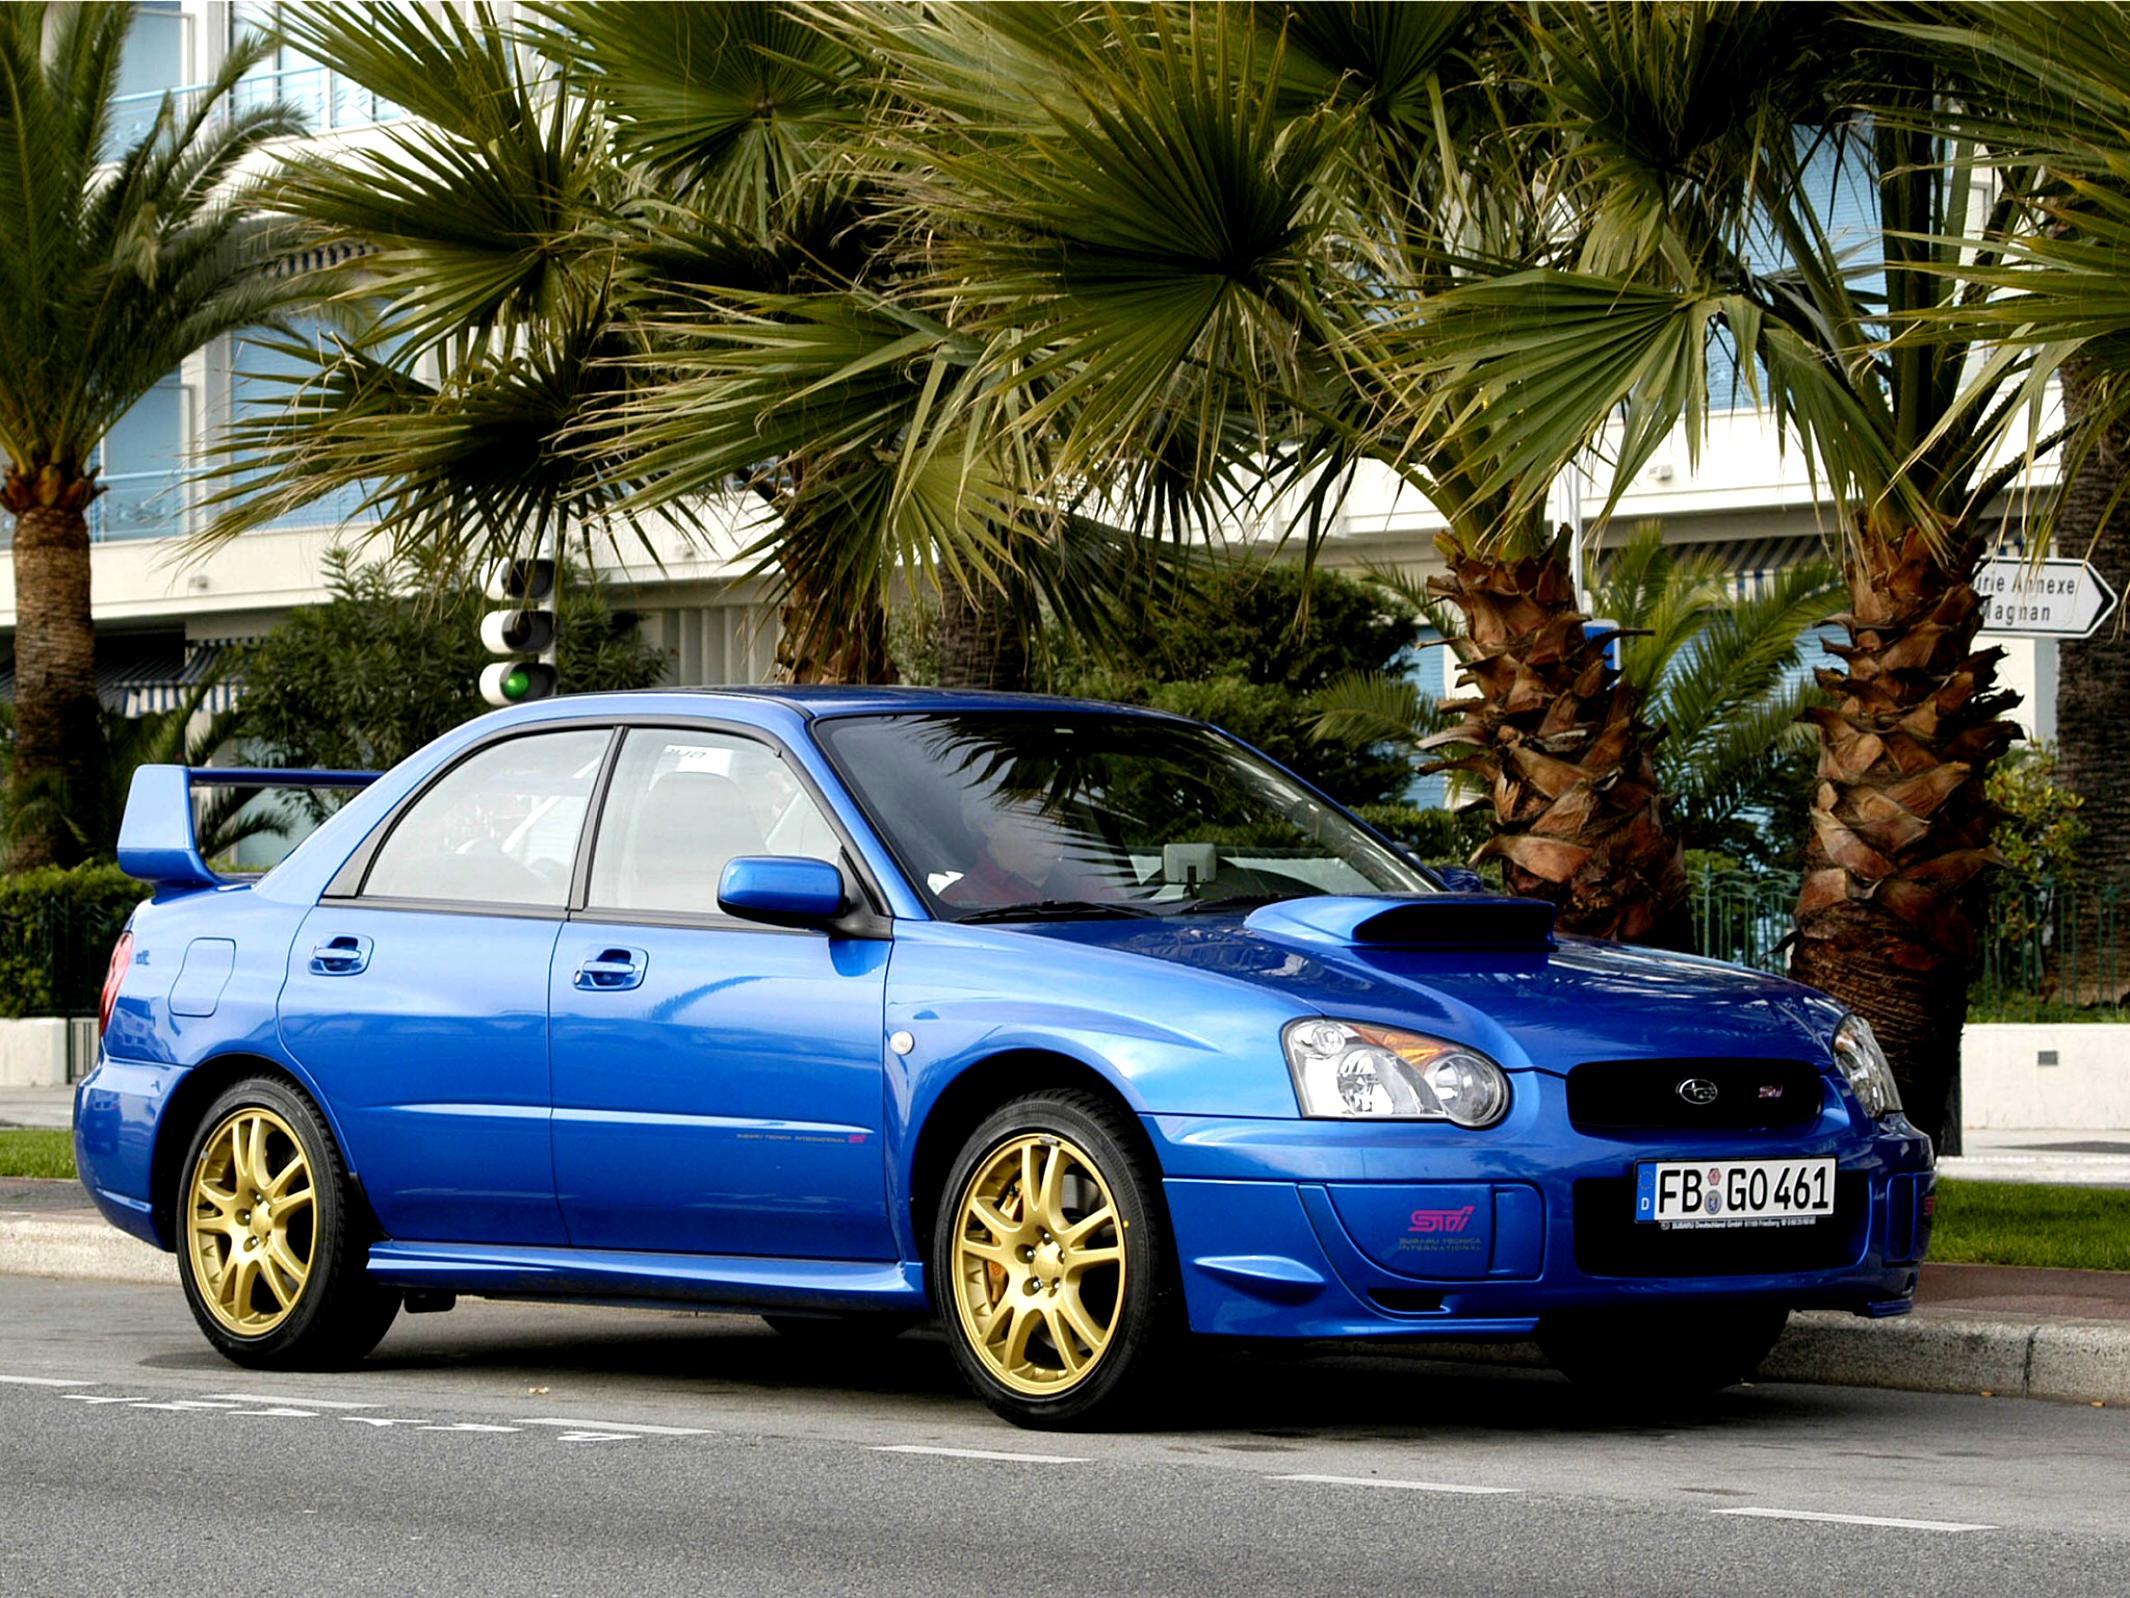 subaru impreza wrx sti 2003 on. Black Bedroom Furniture Sets. Home Design Ideas